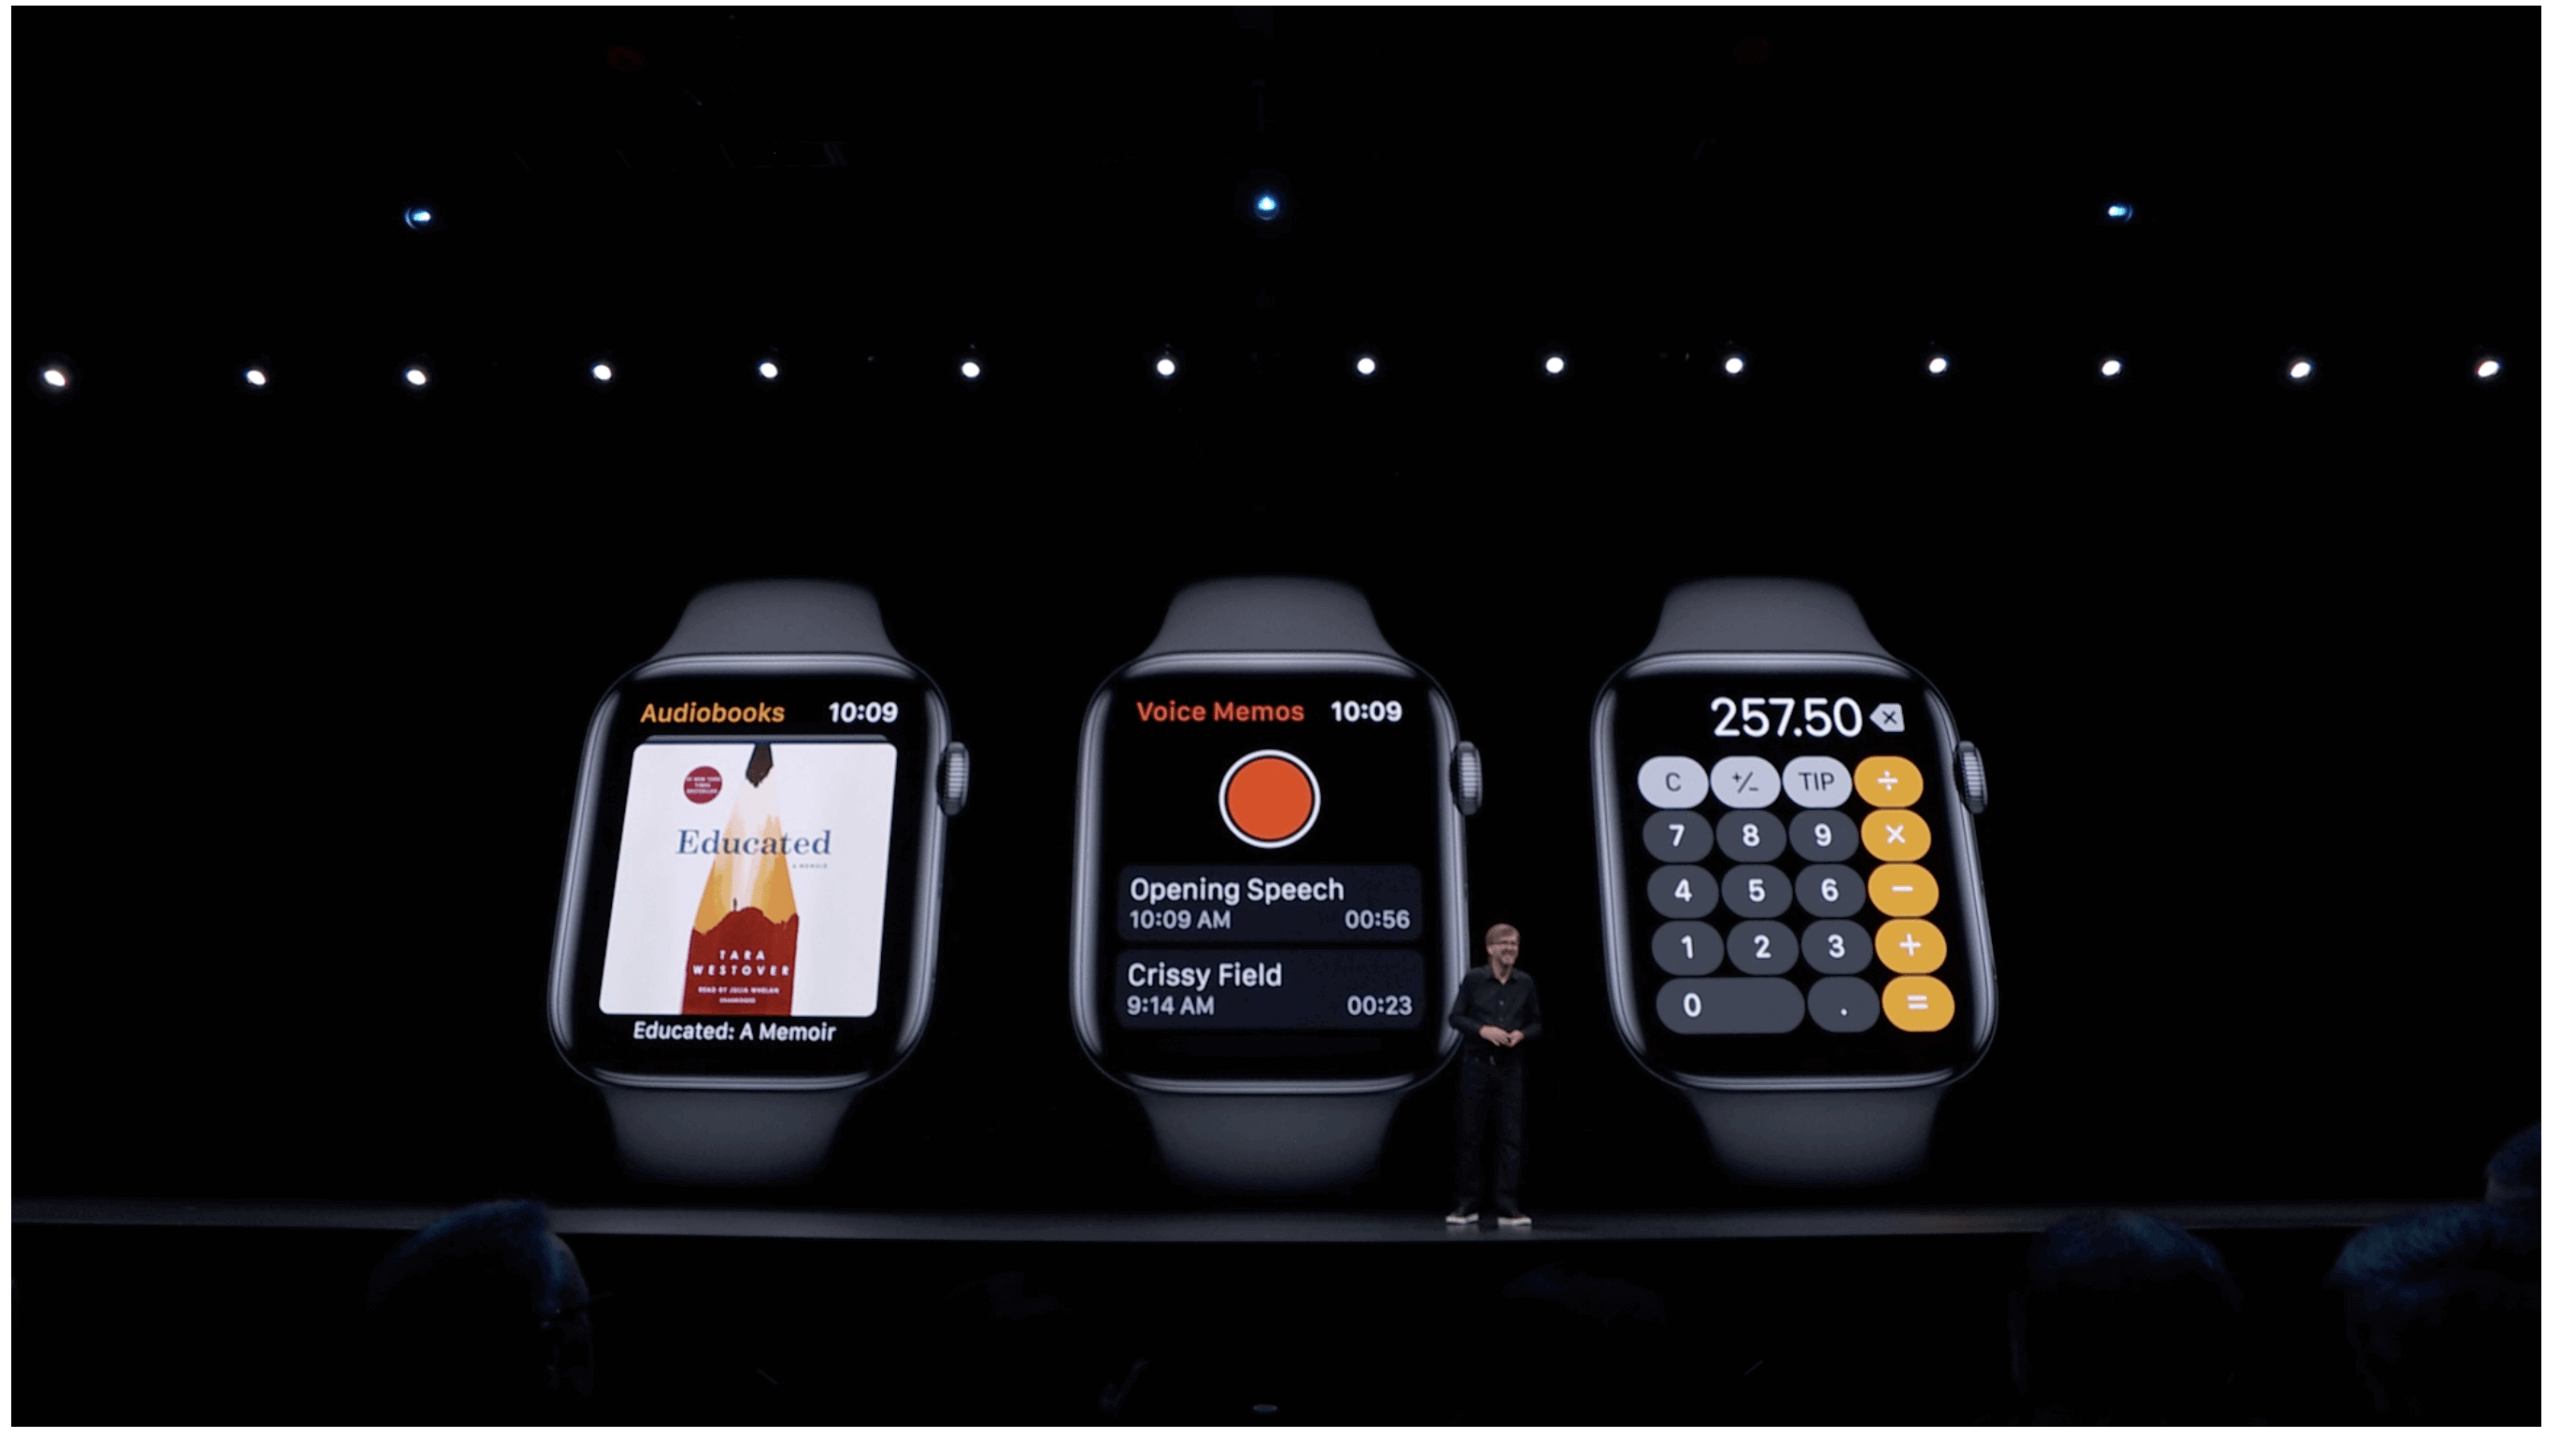 Apple Watch leads the smartwatch segment in Q2 2019